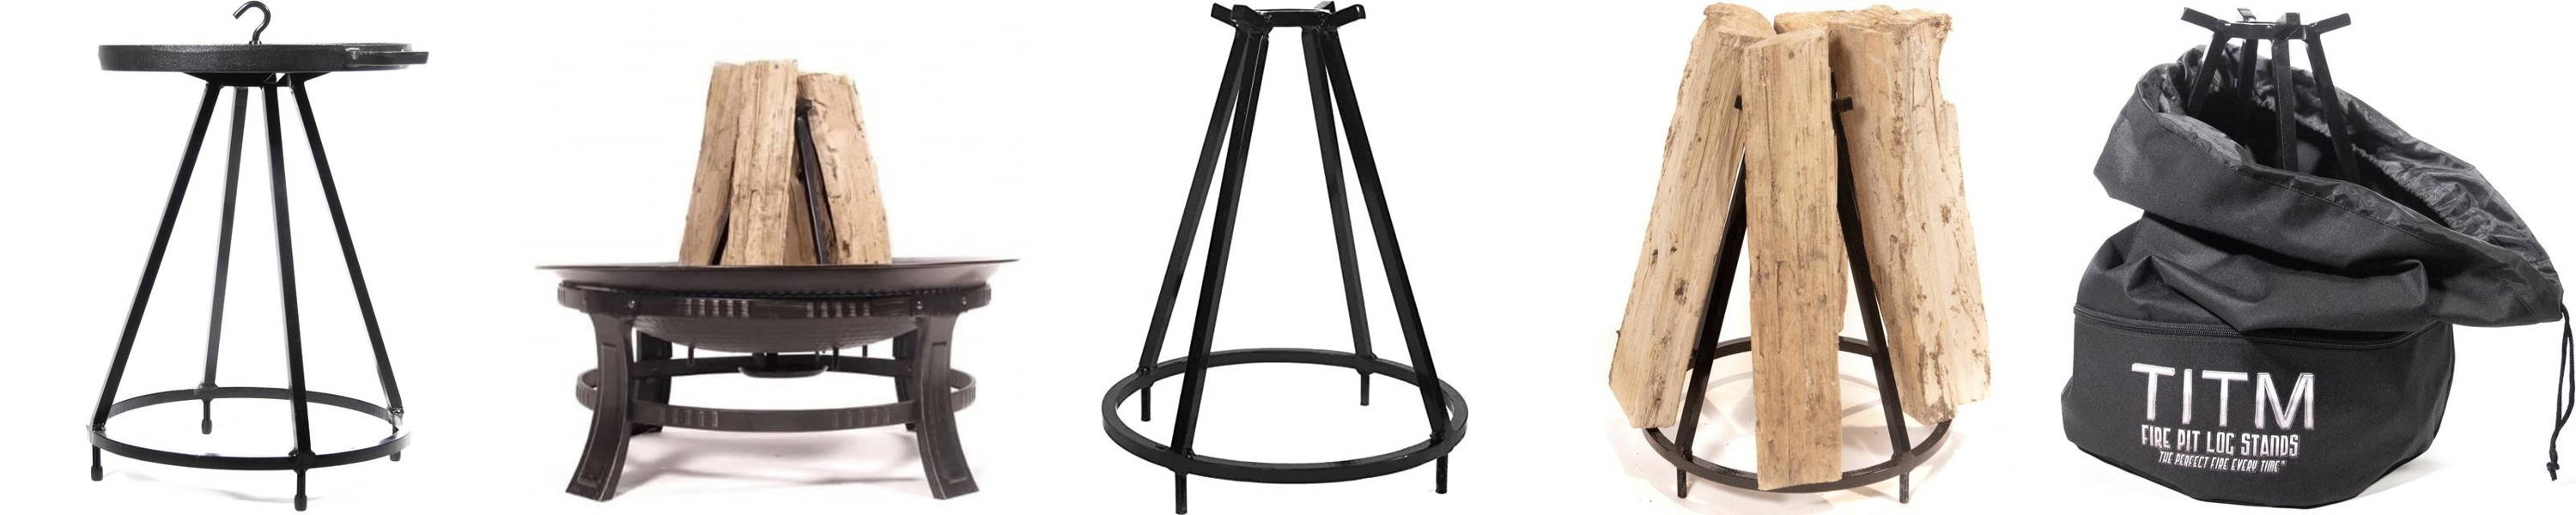 TITM Fire Pit Log Stands: Contact Us